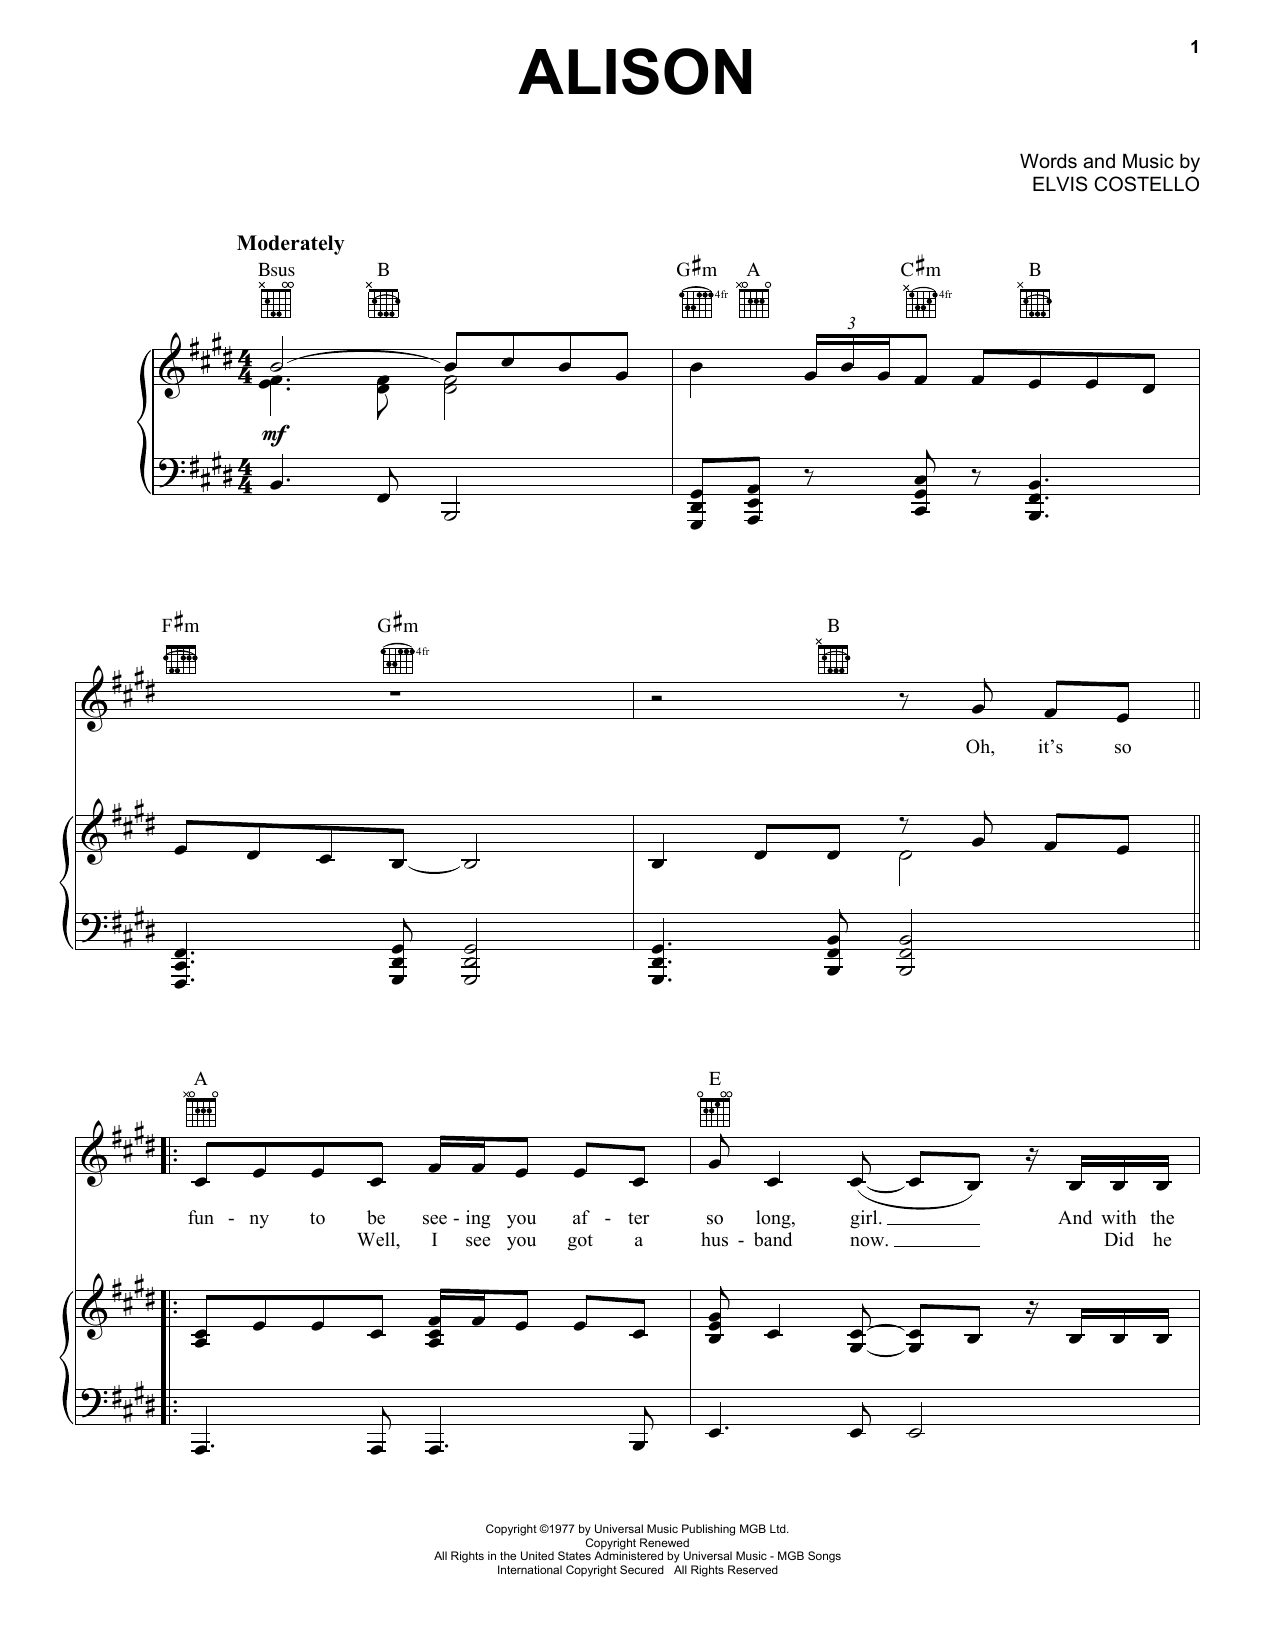 Alison Sheet Music